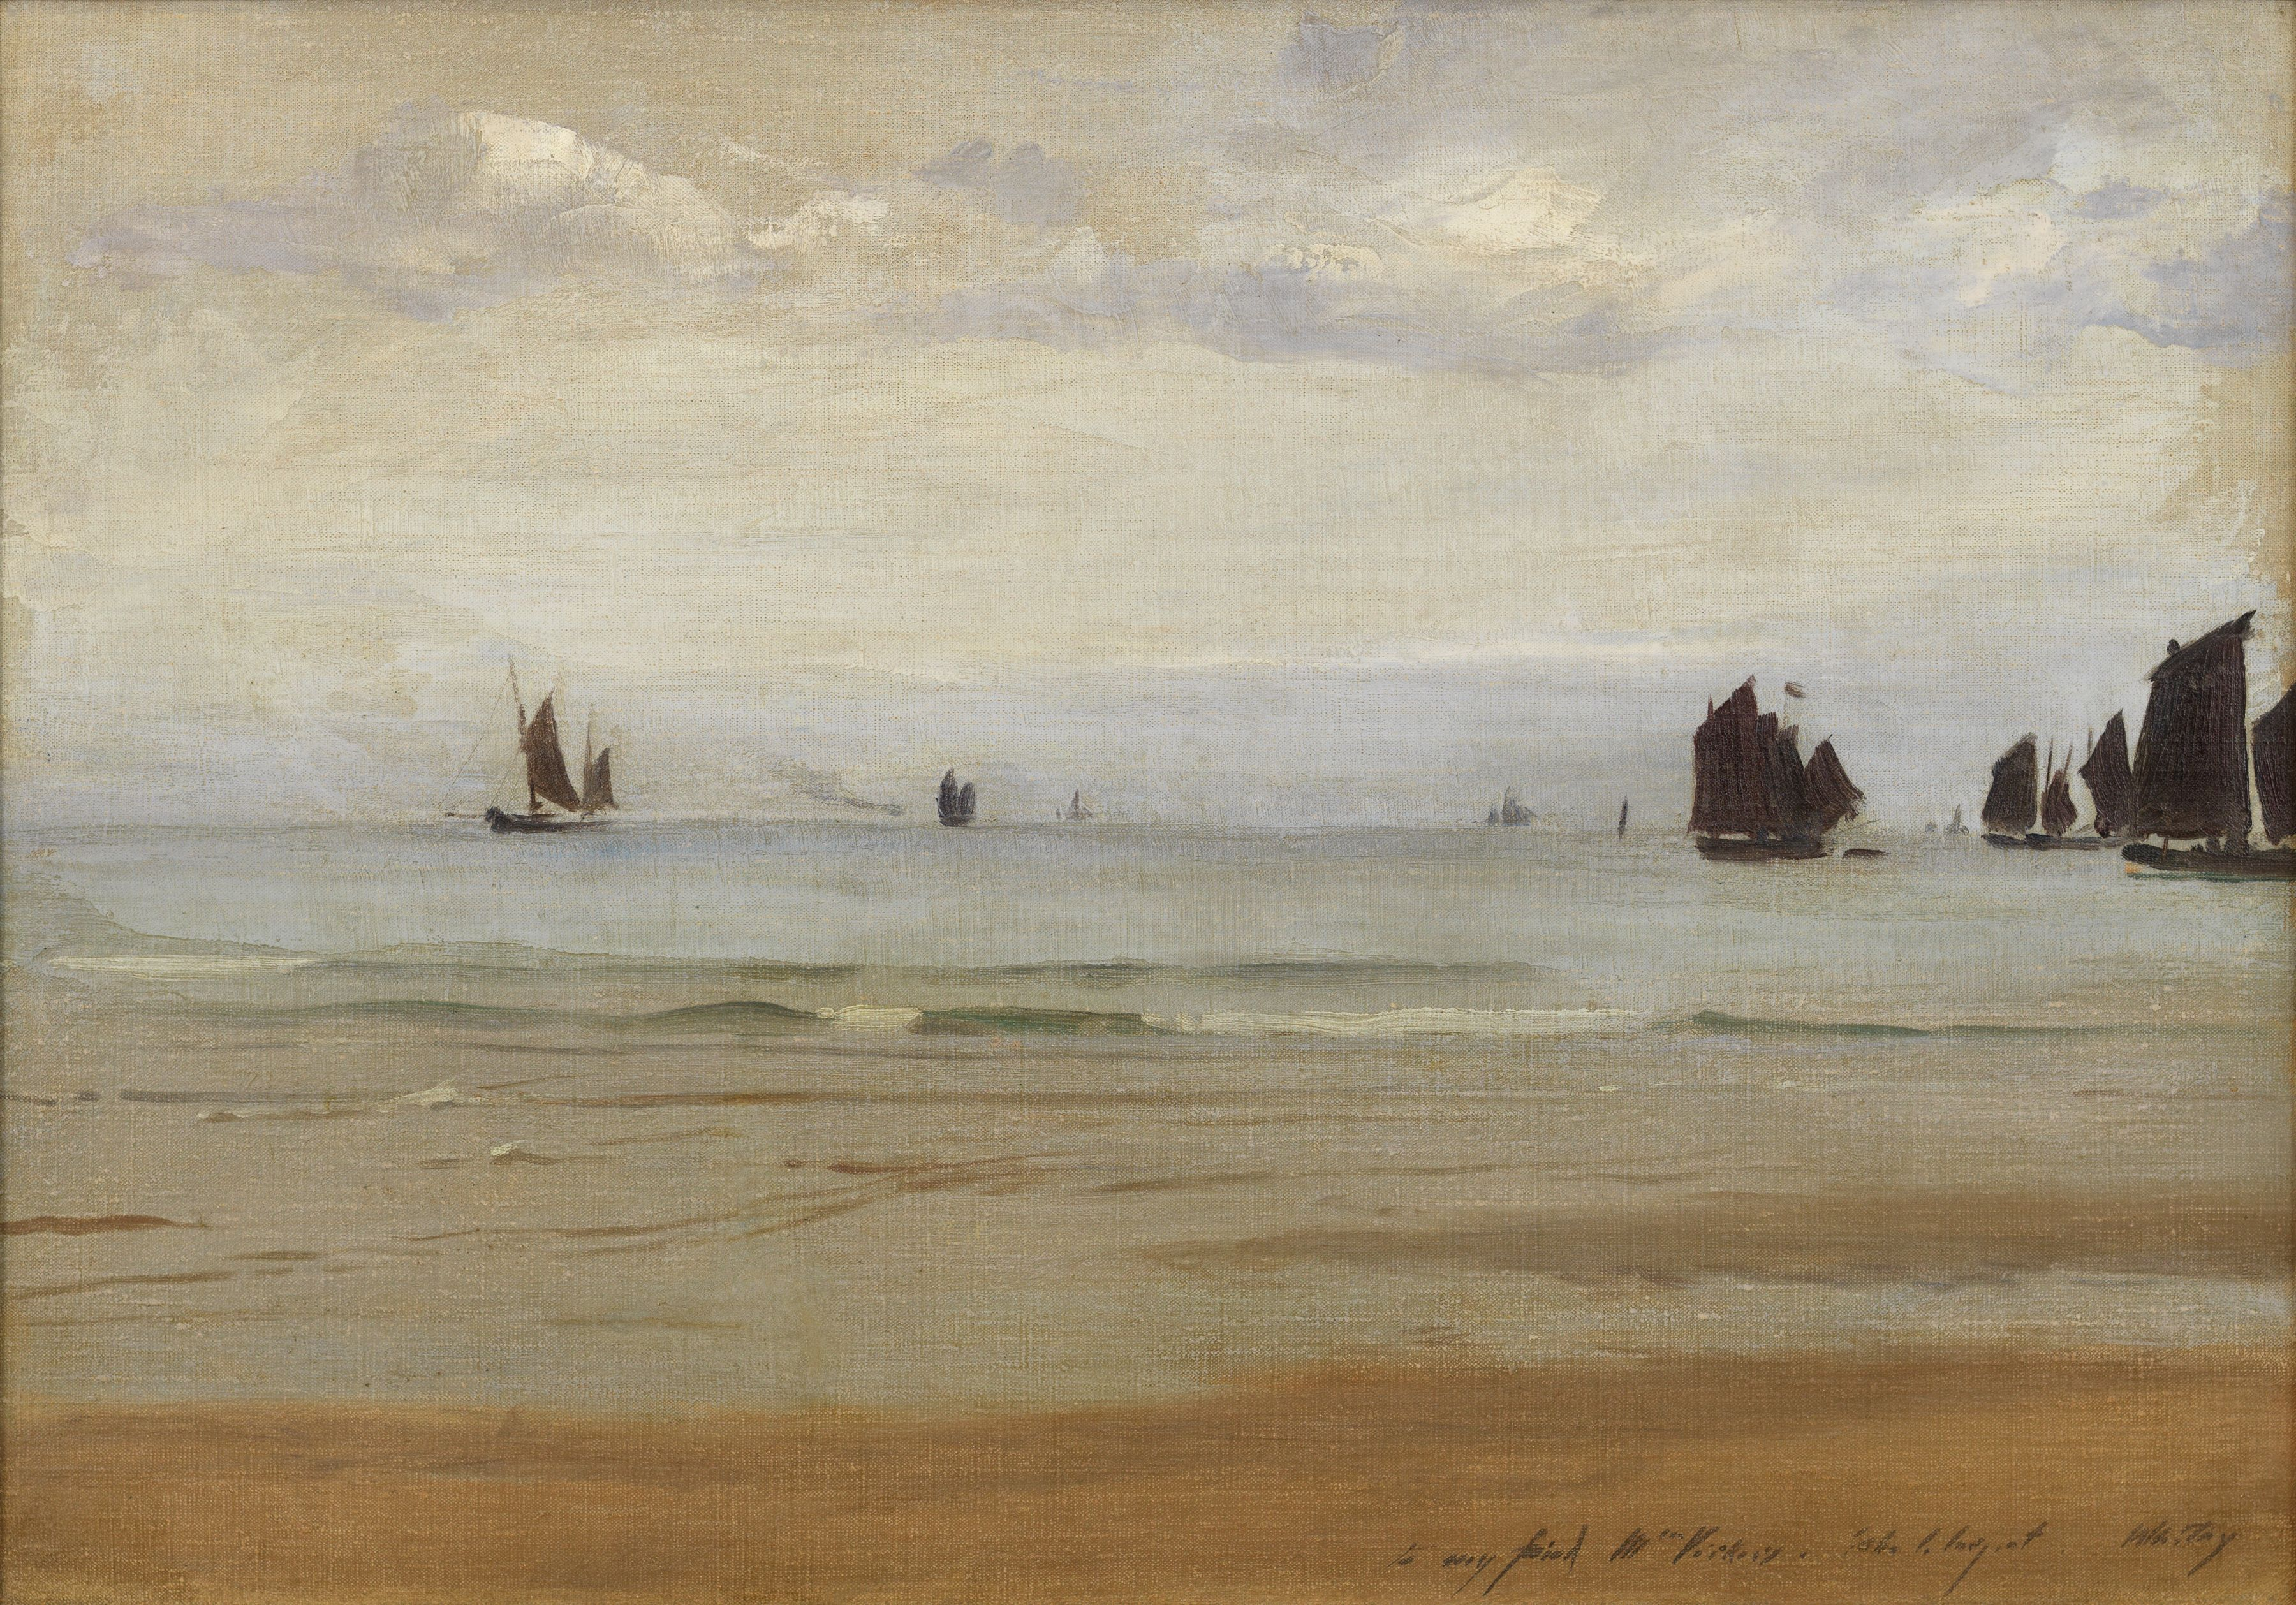 John Singer Sargent (1856-1925) Fishing Boats at Whitby, 1884 Private Collection Nicholas Hall Art Gallery Dealer Old Masters